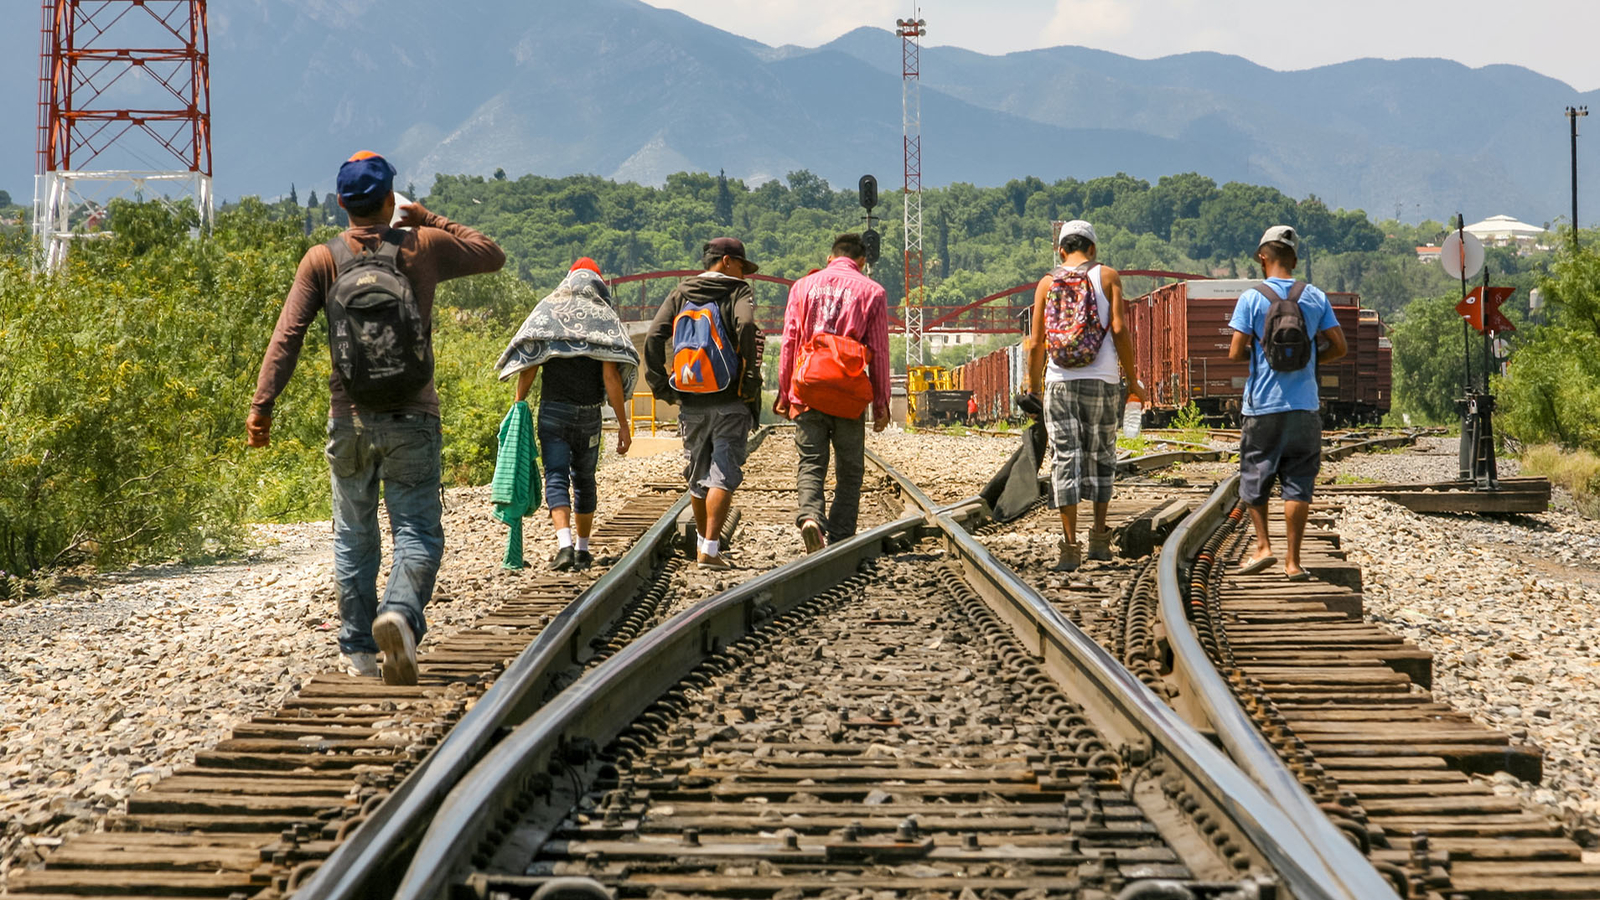 Migrants crossing train tracks.